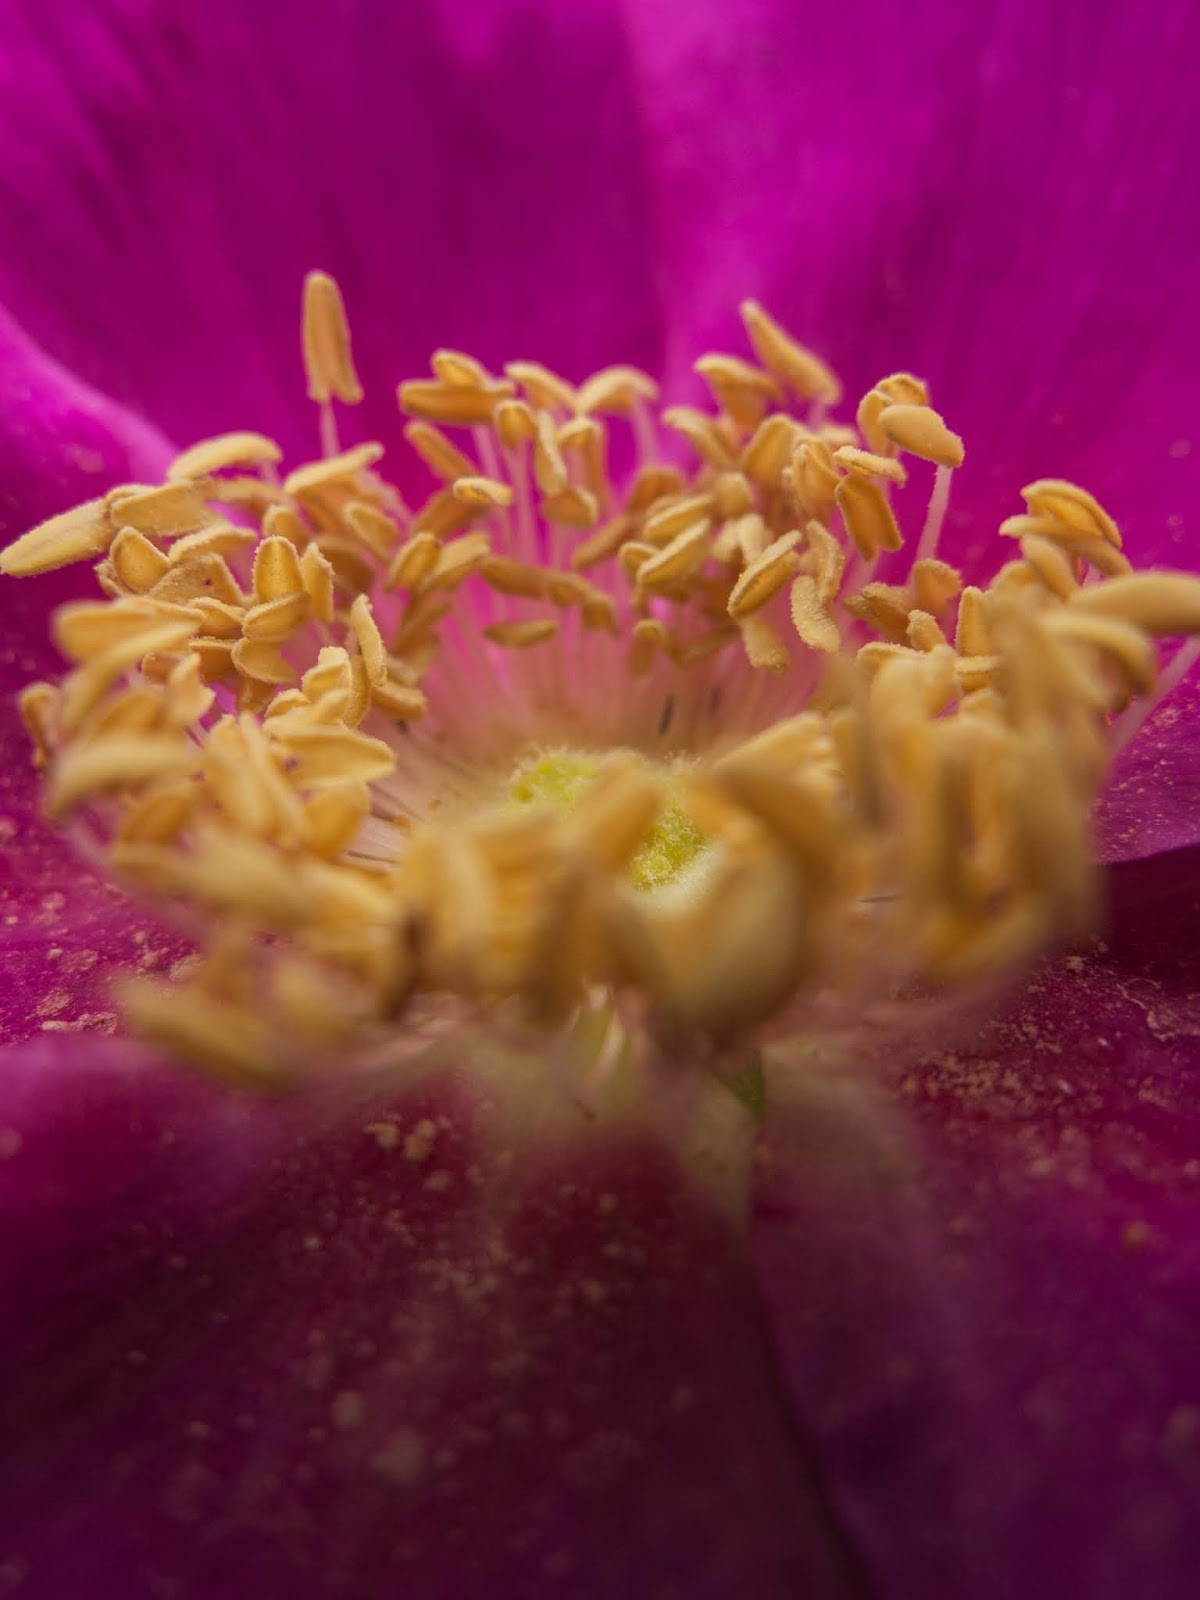 Macro of yellow anthers inside a pink Rose flower.